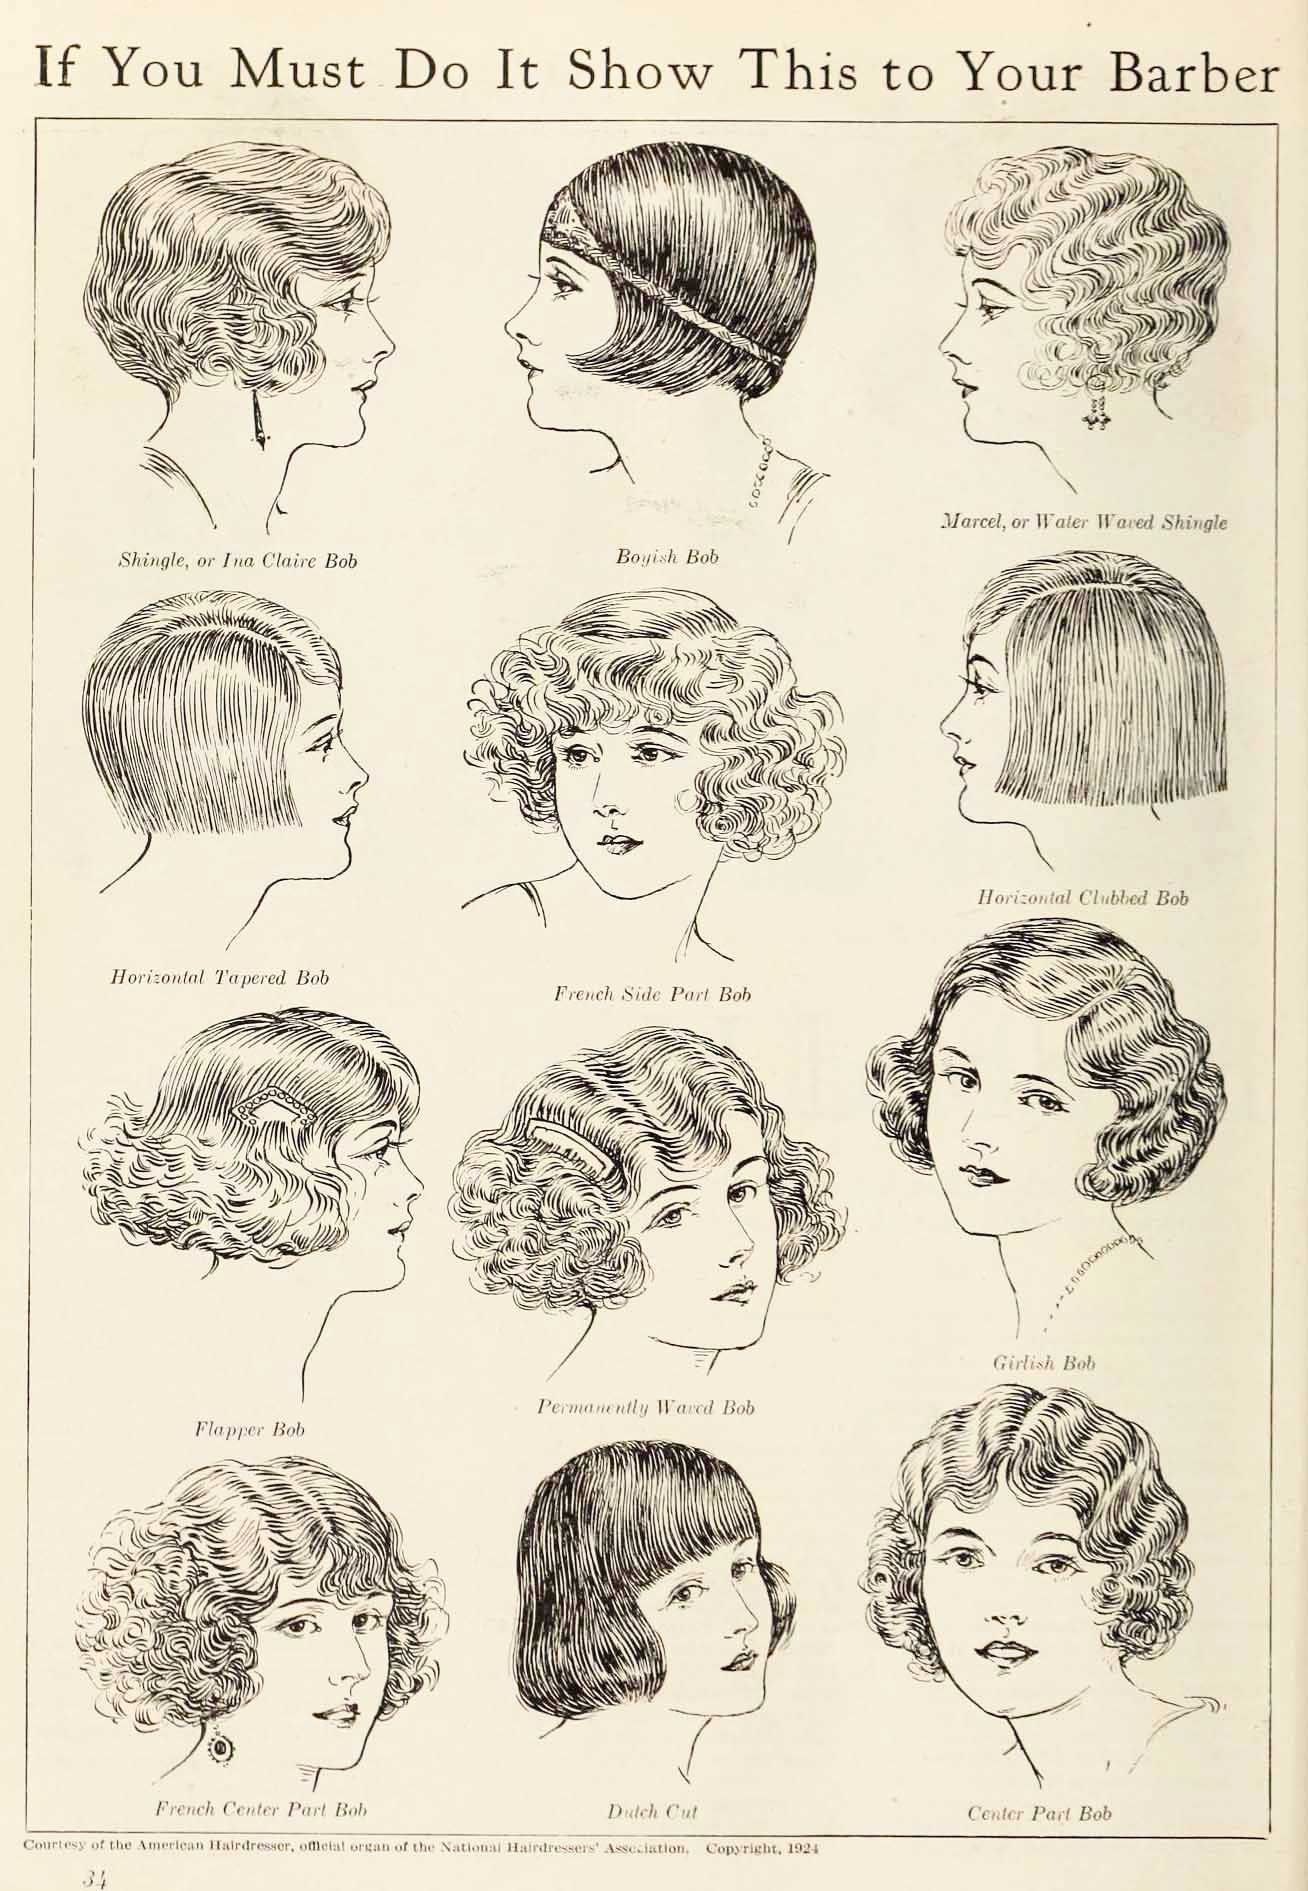 12 bob haircuts for you to try - 1924. #bob #cut #hairstyle